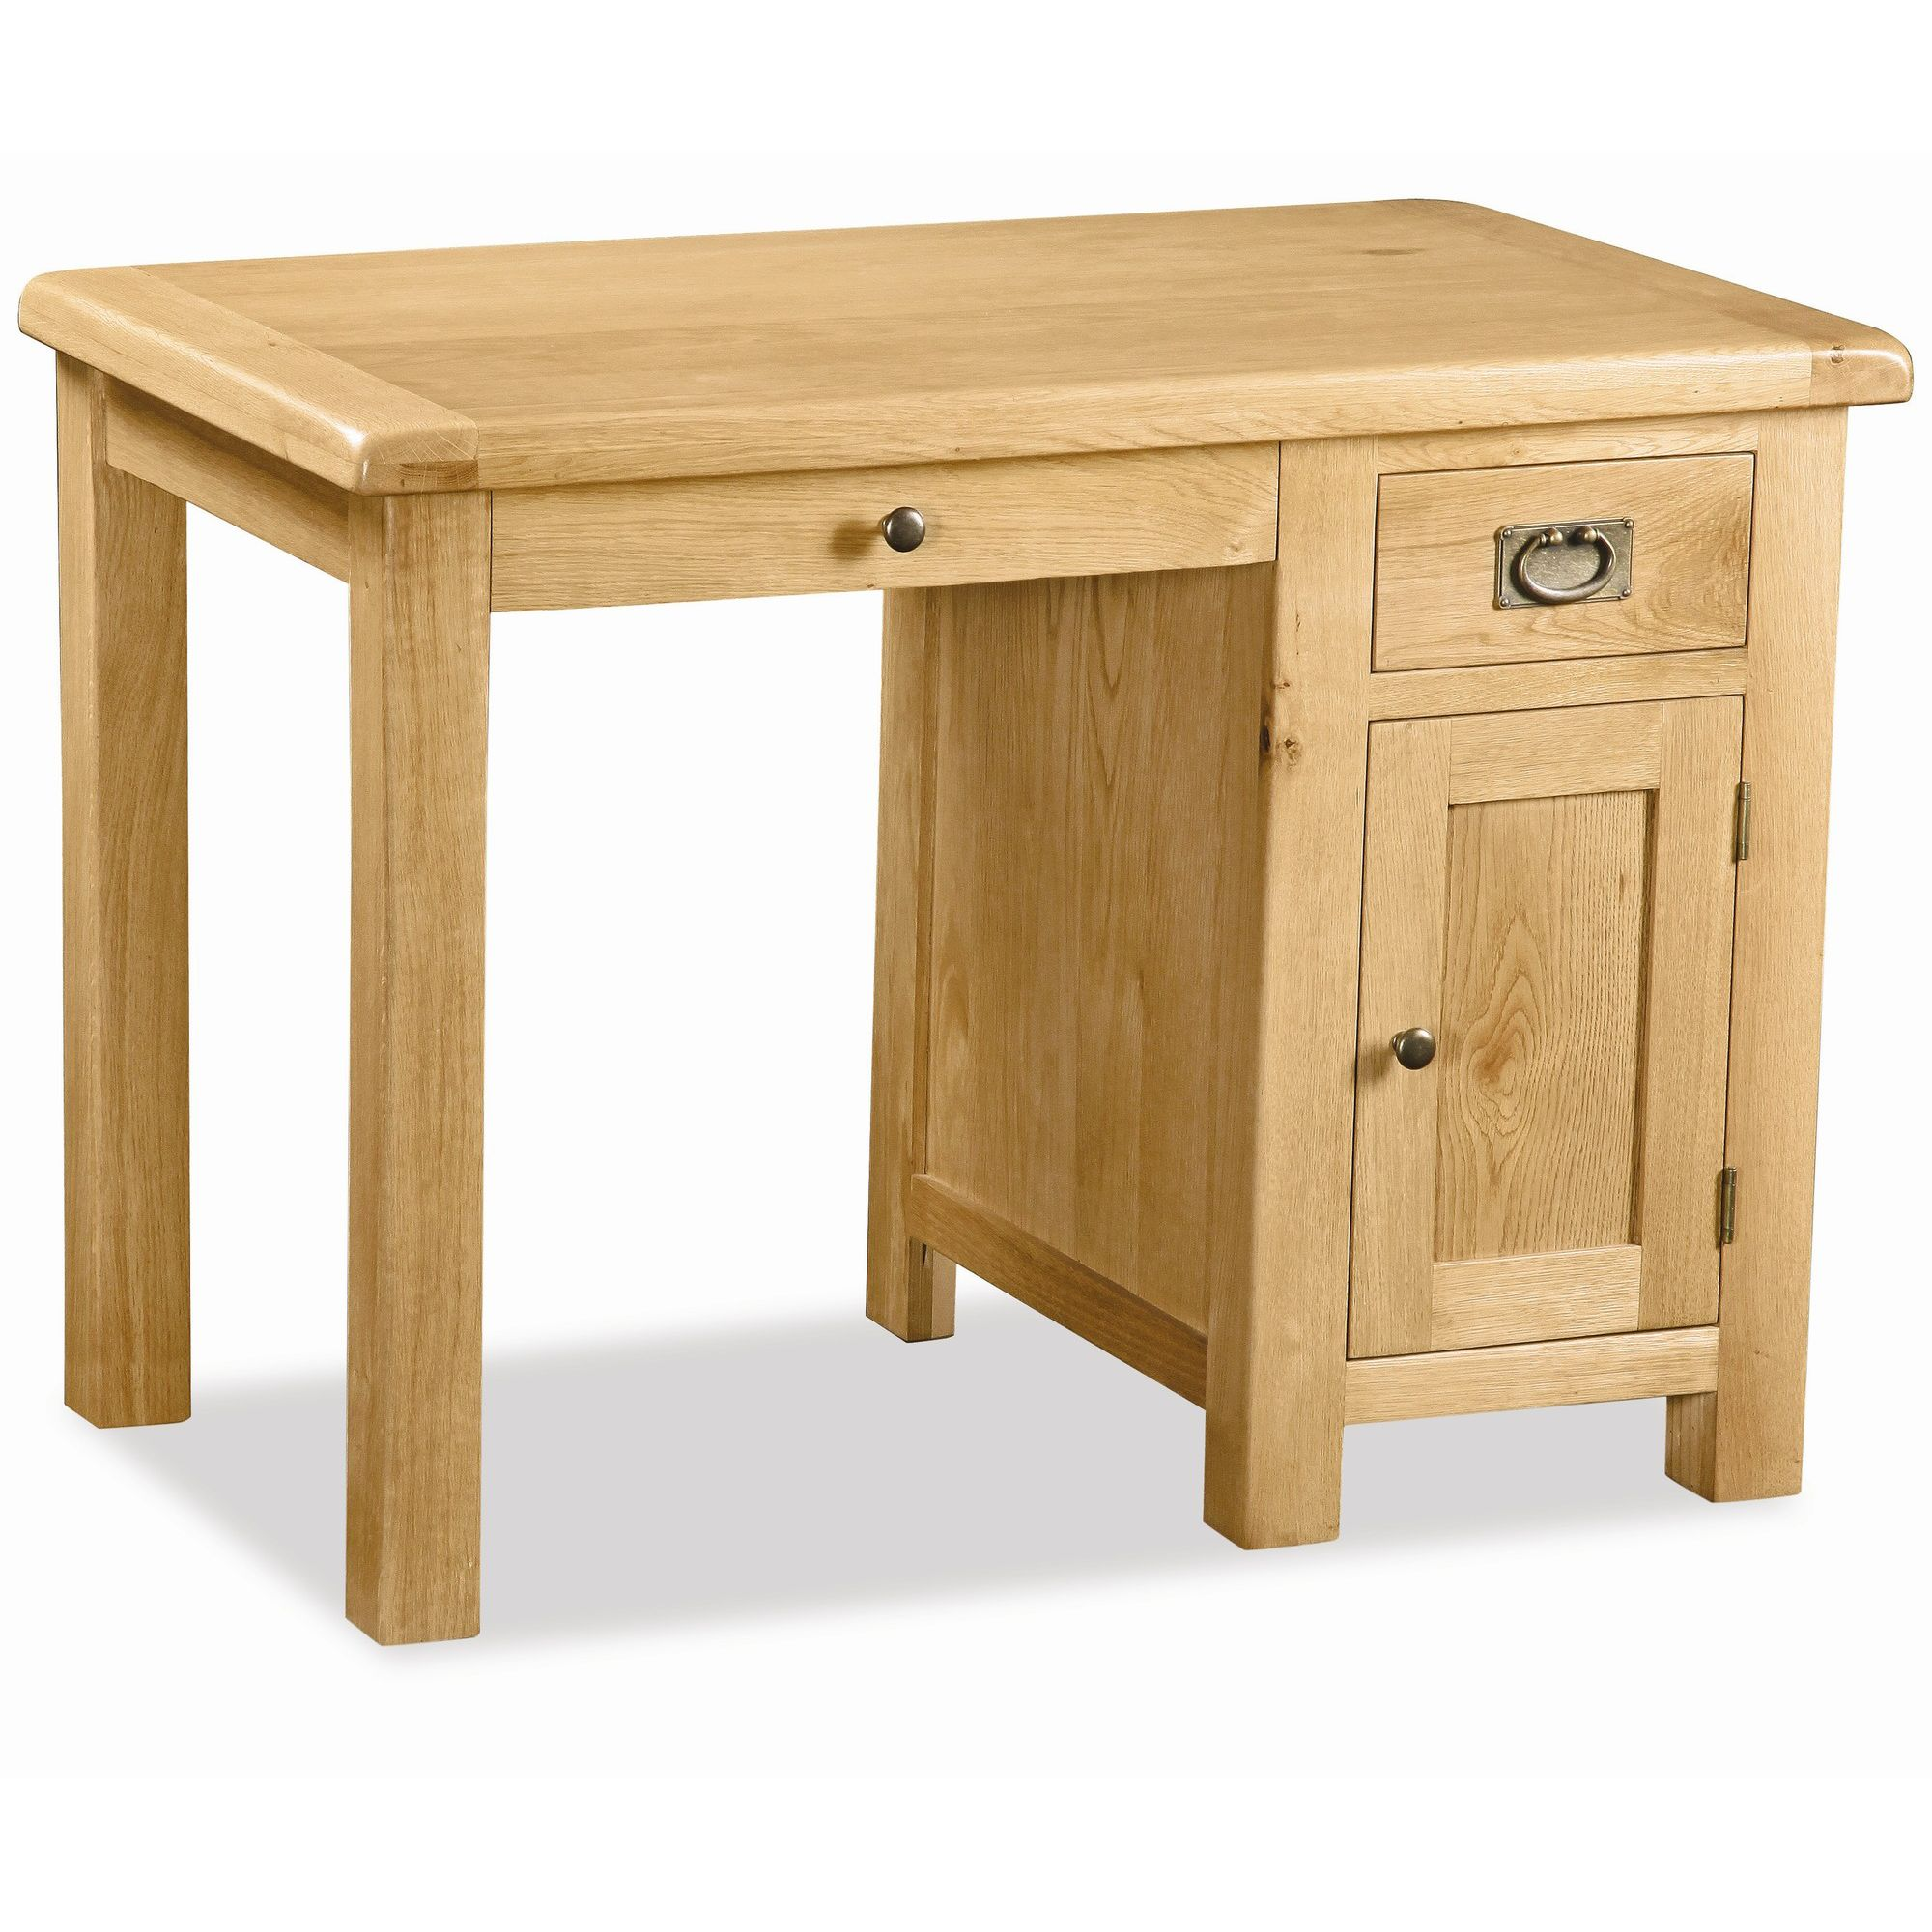 Alterton Furniture Pemberley Single Desk at Tesco Direct